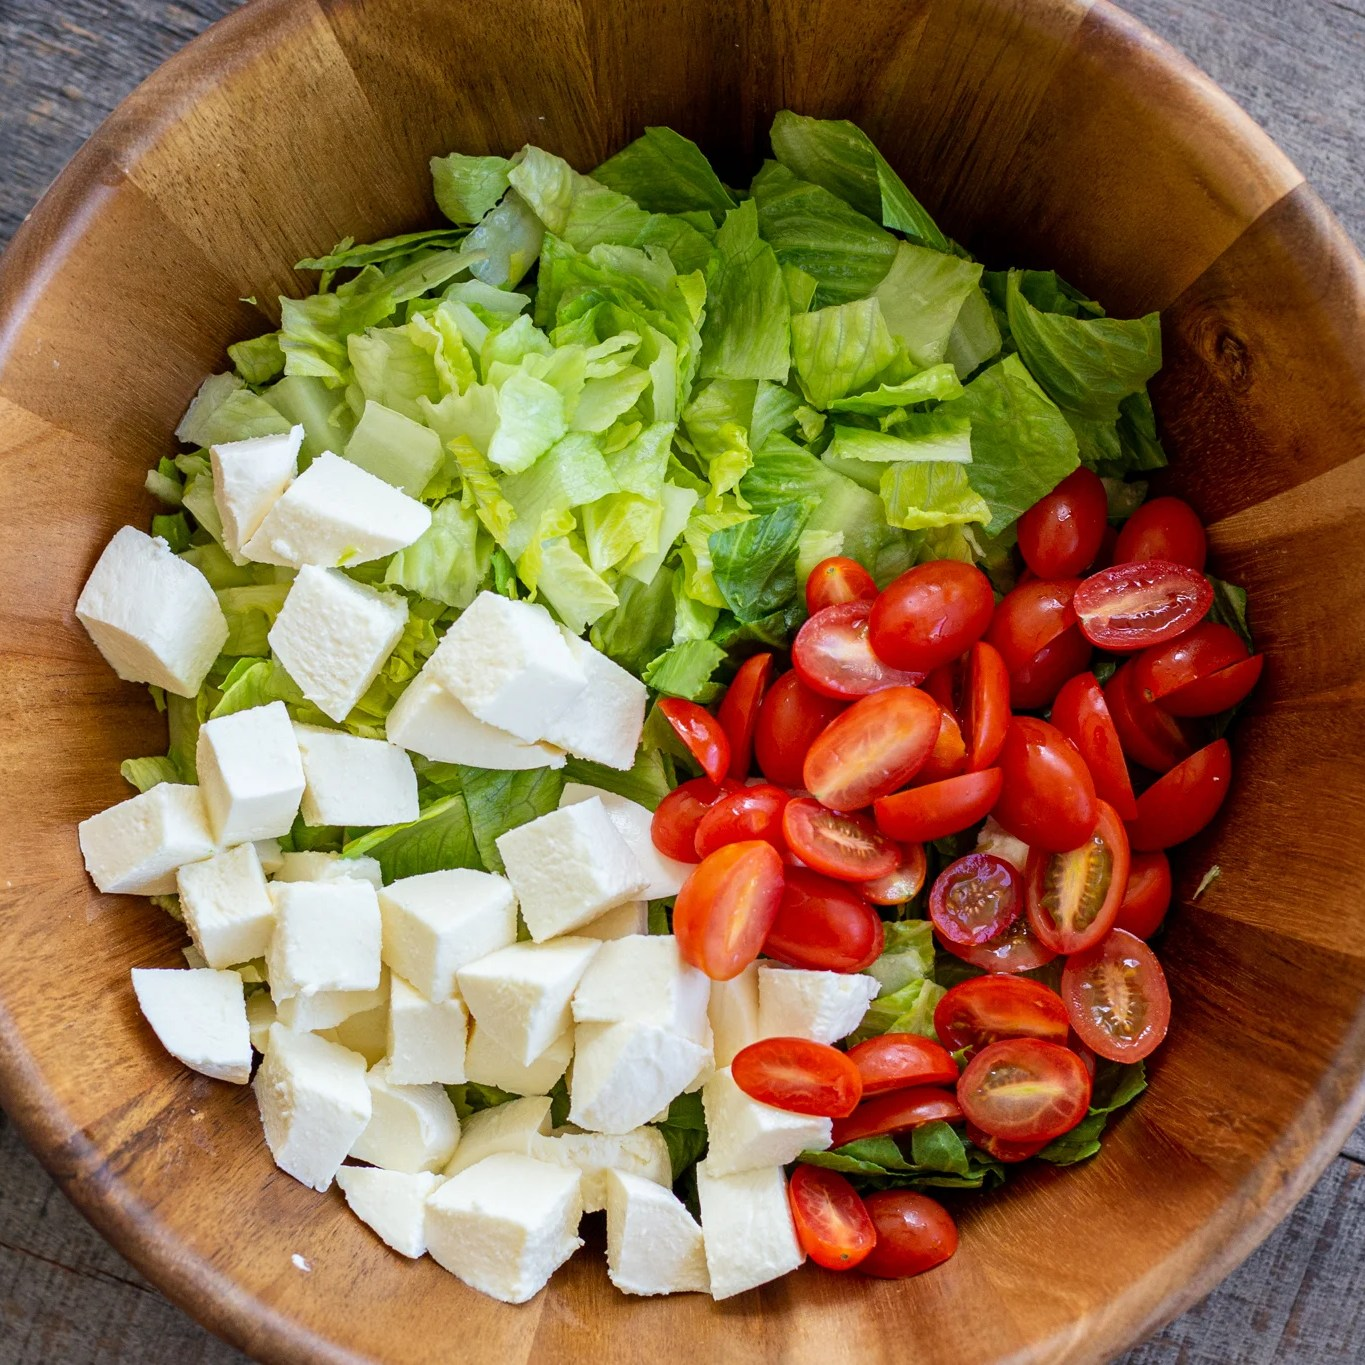 Salad ingredients in a bowl